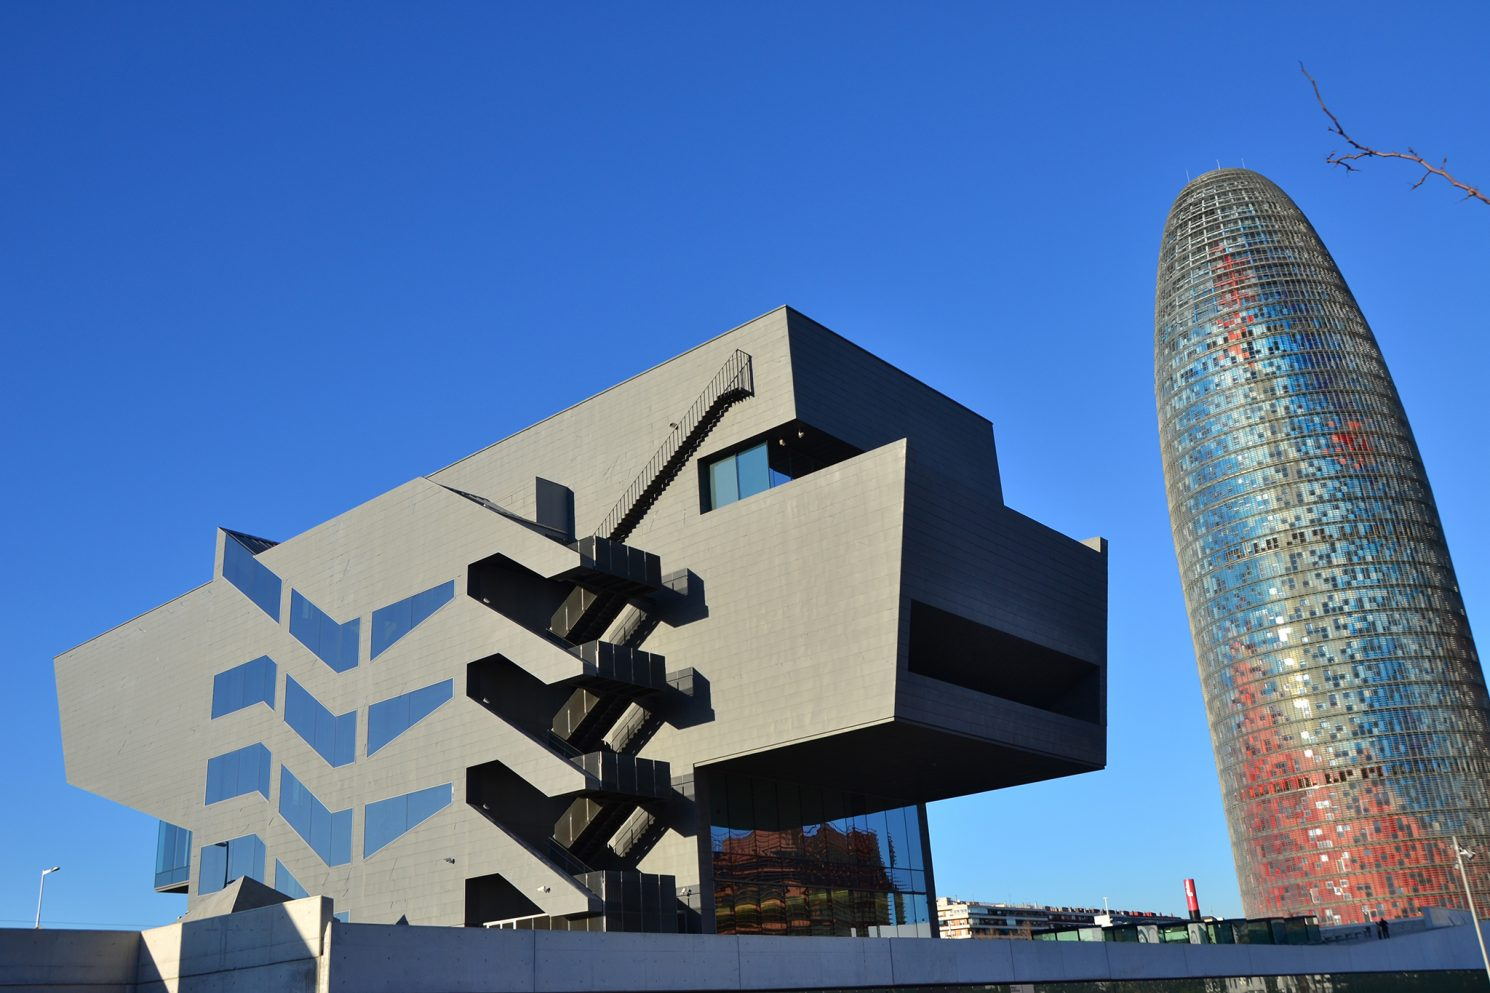 Design Museum and Torre Agbar in Barcelona, Catalonia in Spain; Guest post by Duncan Rhodes for the travel thruster series on Mallory on Travel adventure travel, photography, travel